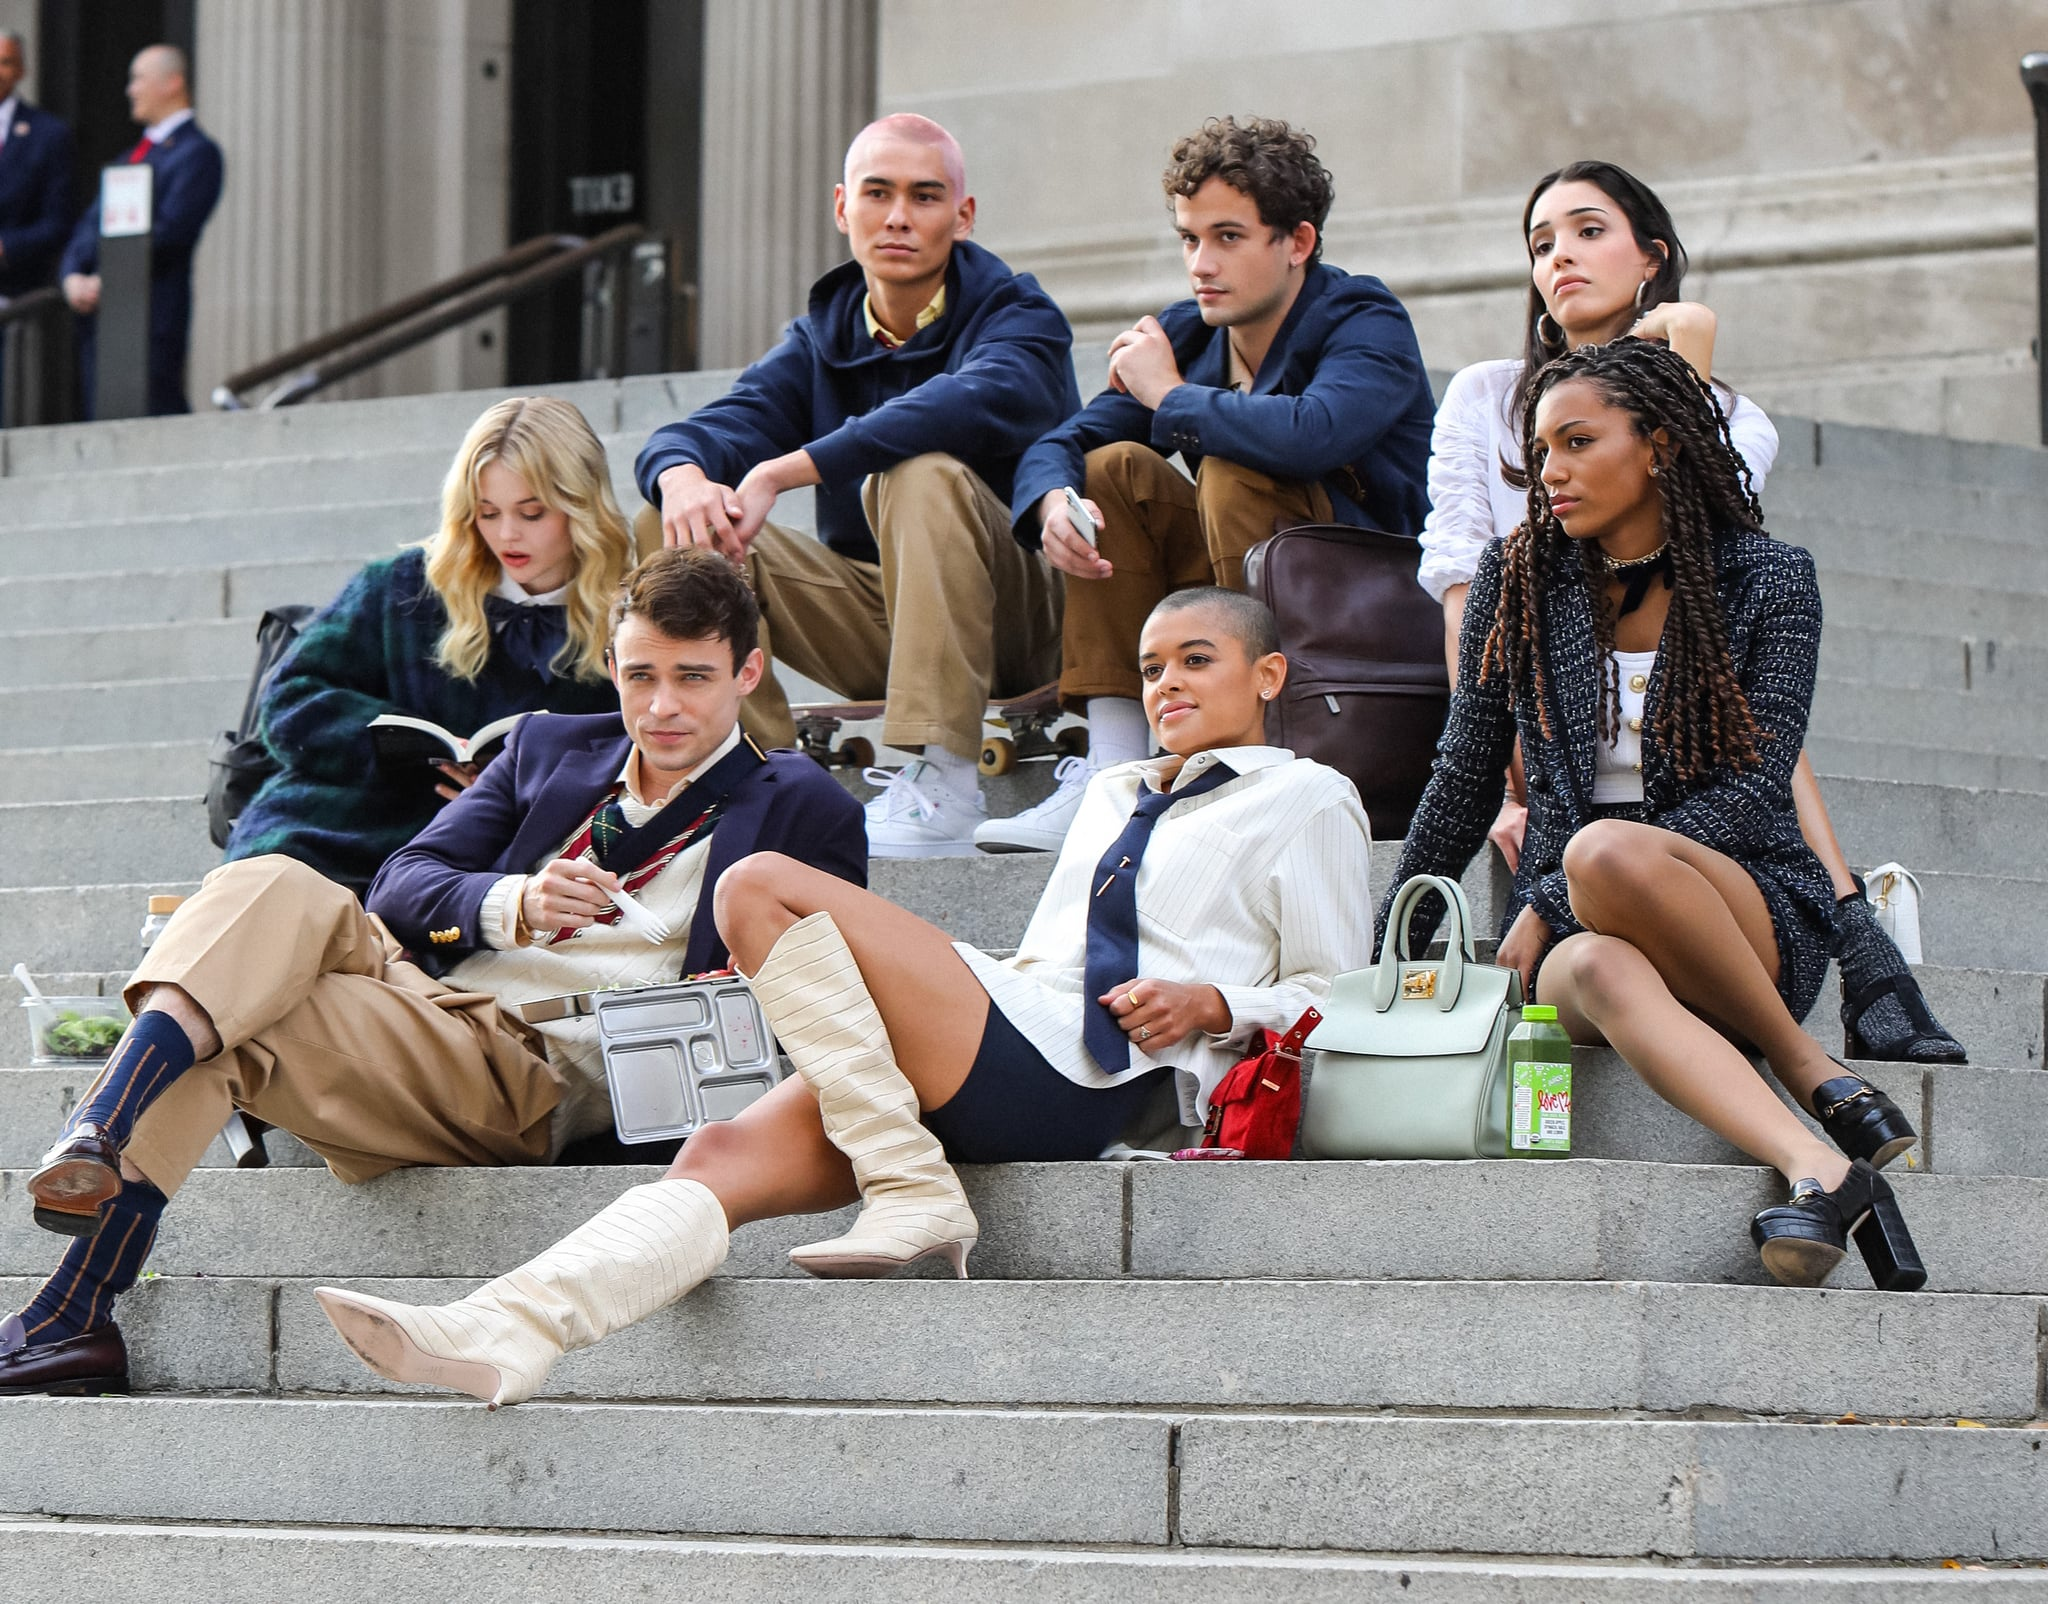 NEW YORK, NY - NOVEMBER 10: Evan Mock, Emily Alyn Lind, Thomas Doherty, Eli Brown, Jordan Alexander, Zion Moreno and Savannah Lee Smith are seen at the film set of the 'Gossip Girl' TV Series on November 10, 2020 in New York City.  (Photo by Jose Perez/Bauer-Griffin/GC Images)